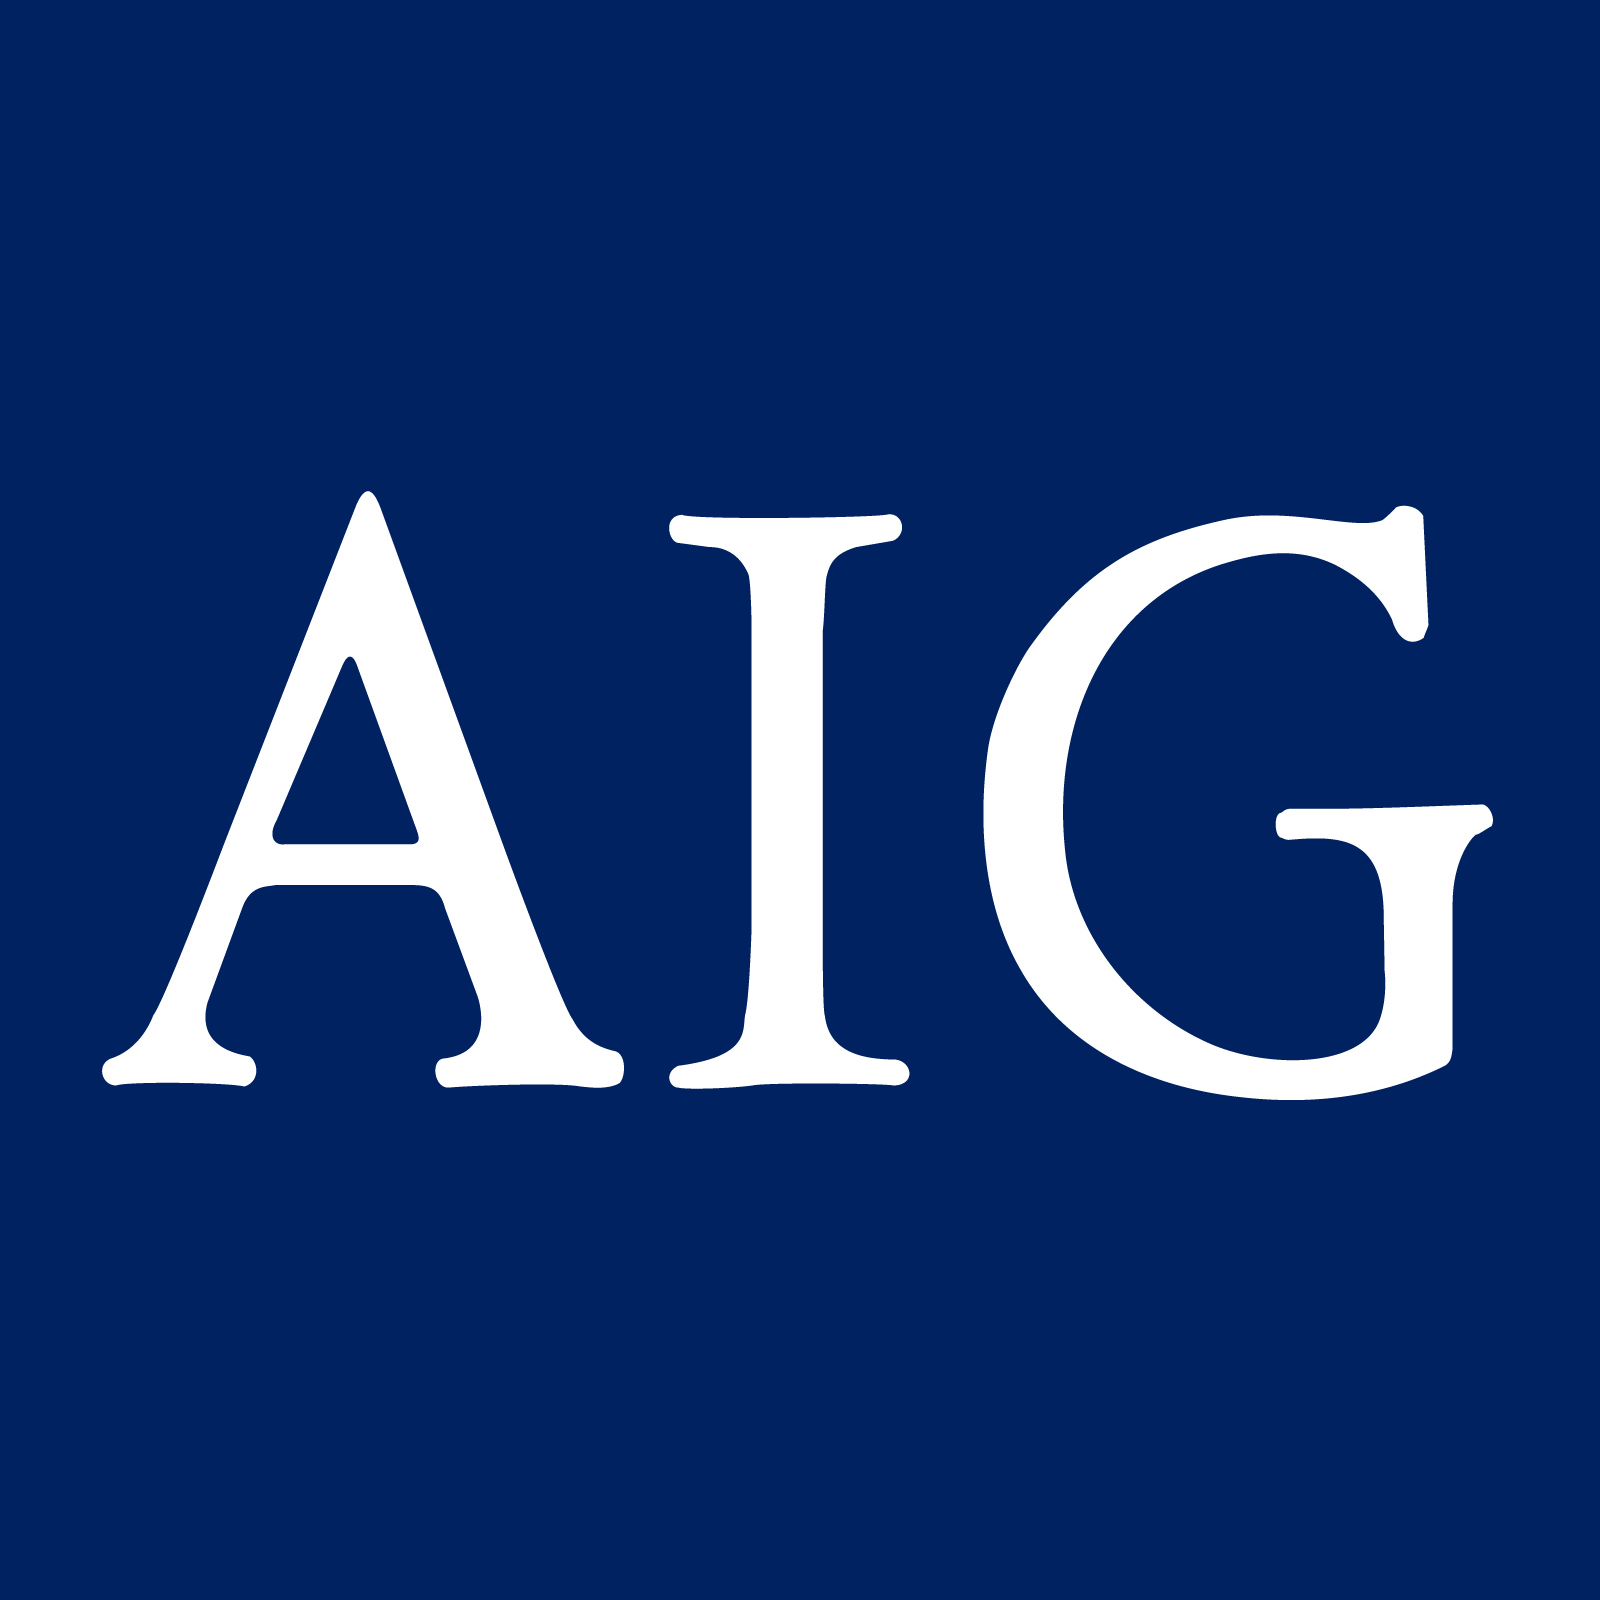 Aig Auto Insurance >> AIG to Revive AIG Name; Drop Chartis, SunAmerica Names ...